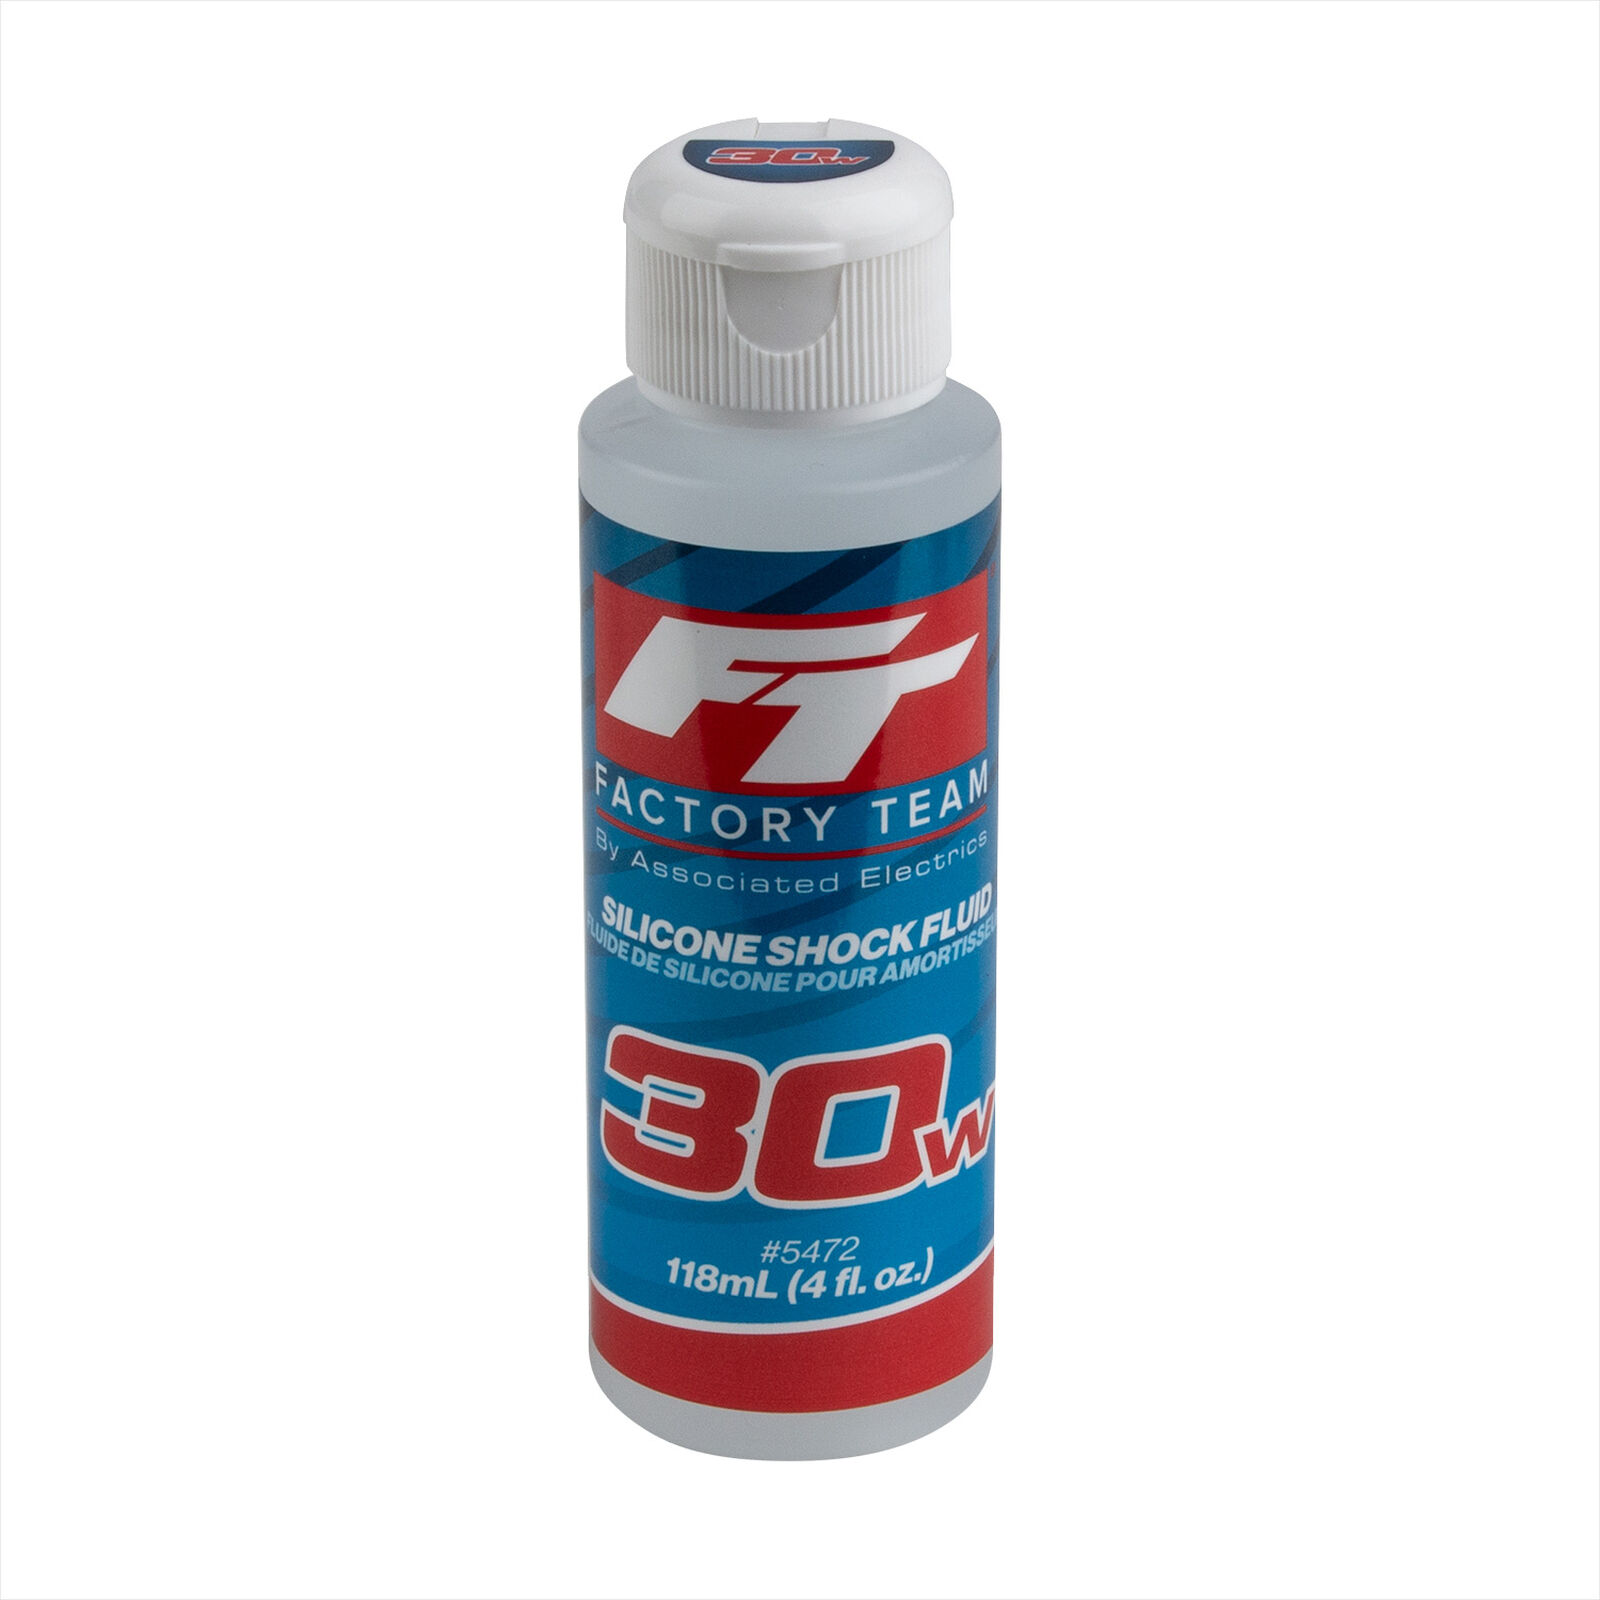 FT Silicone Shock Fluid, 30wt (350 cSt)